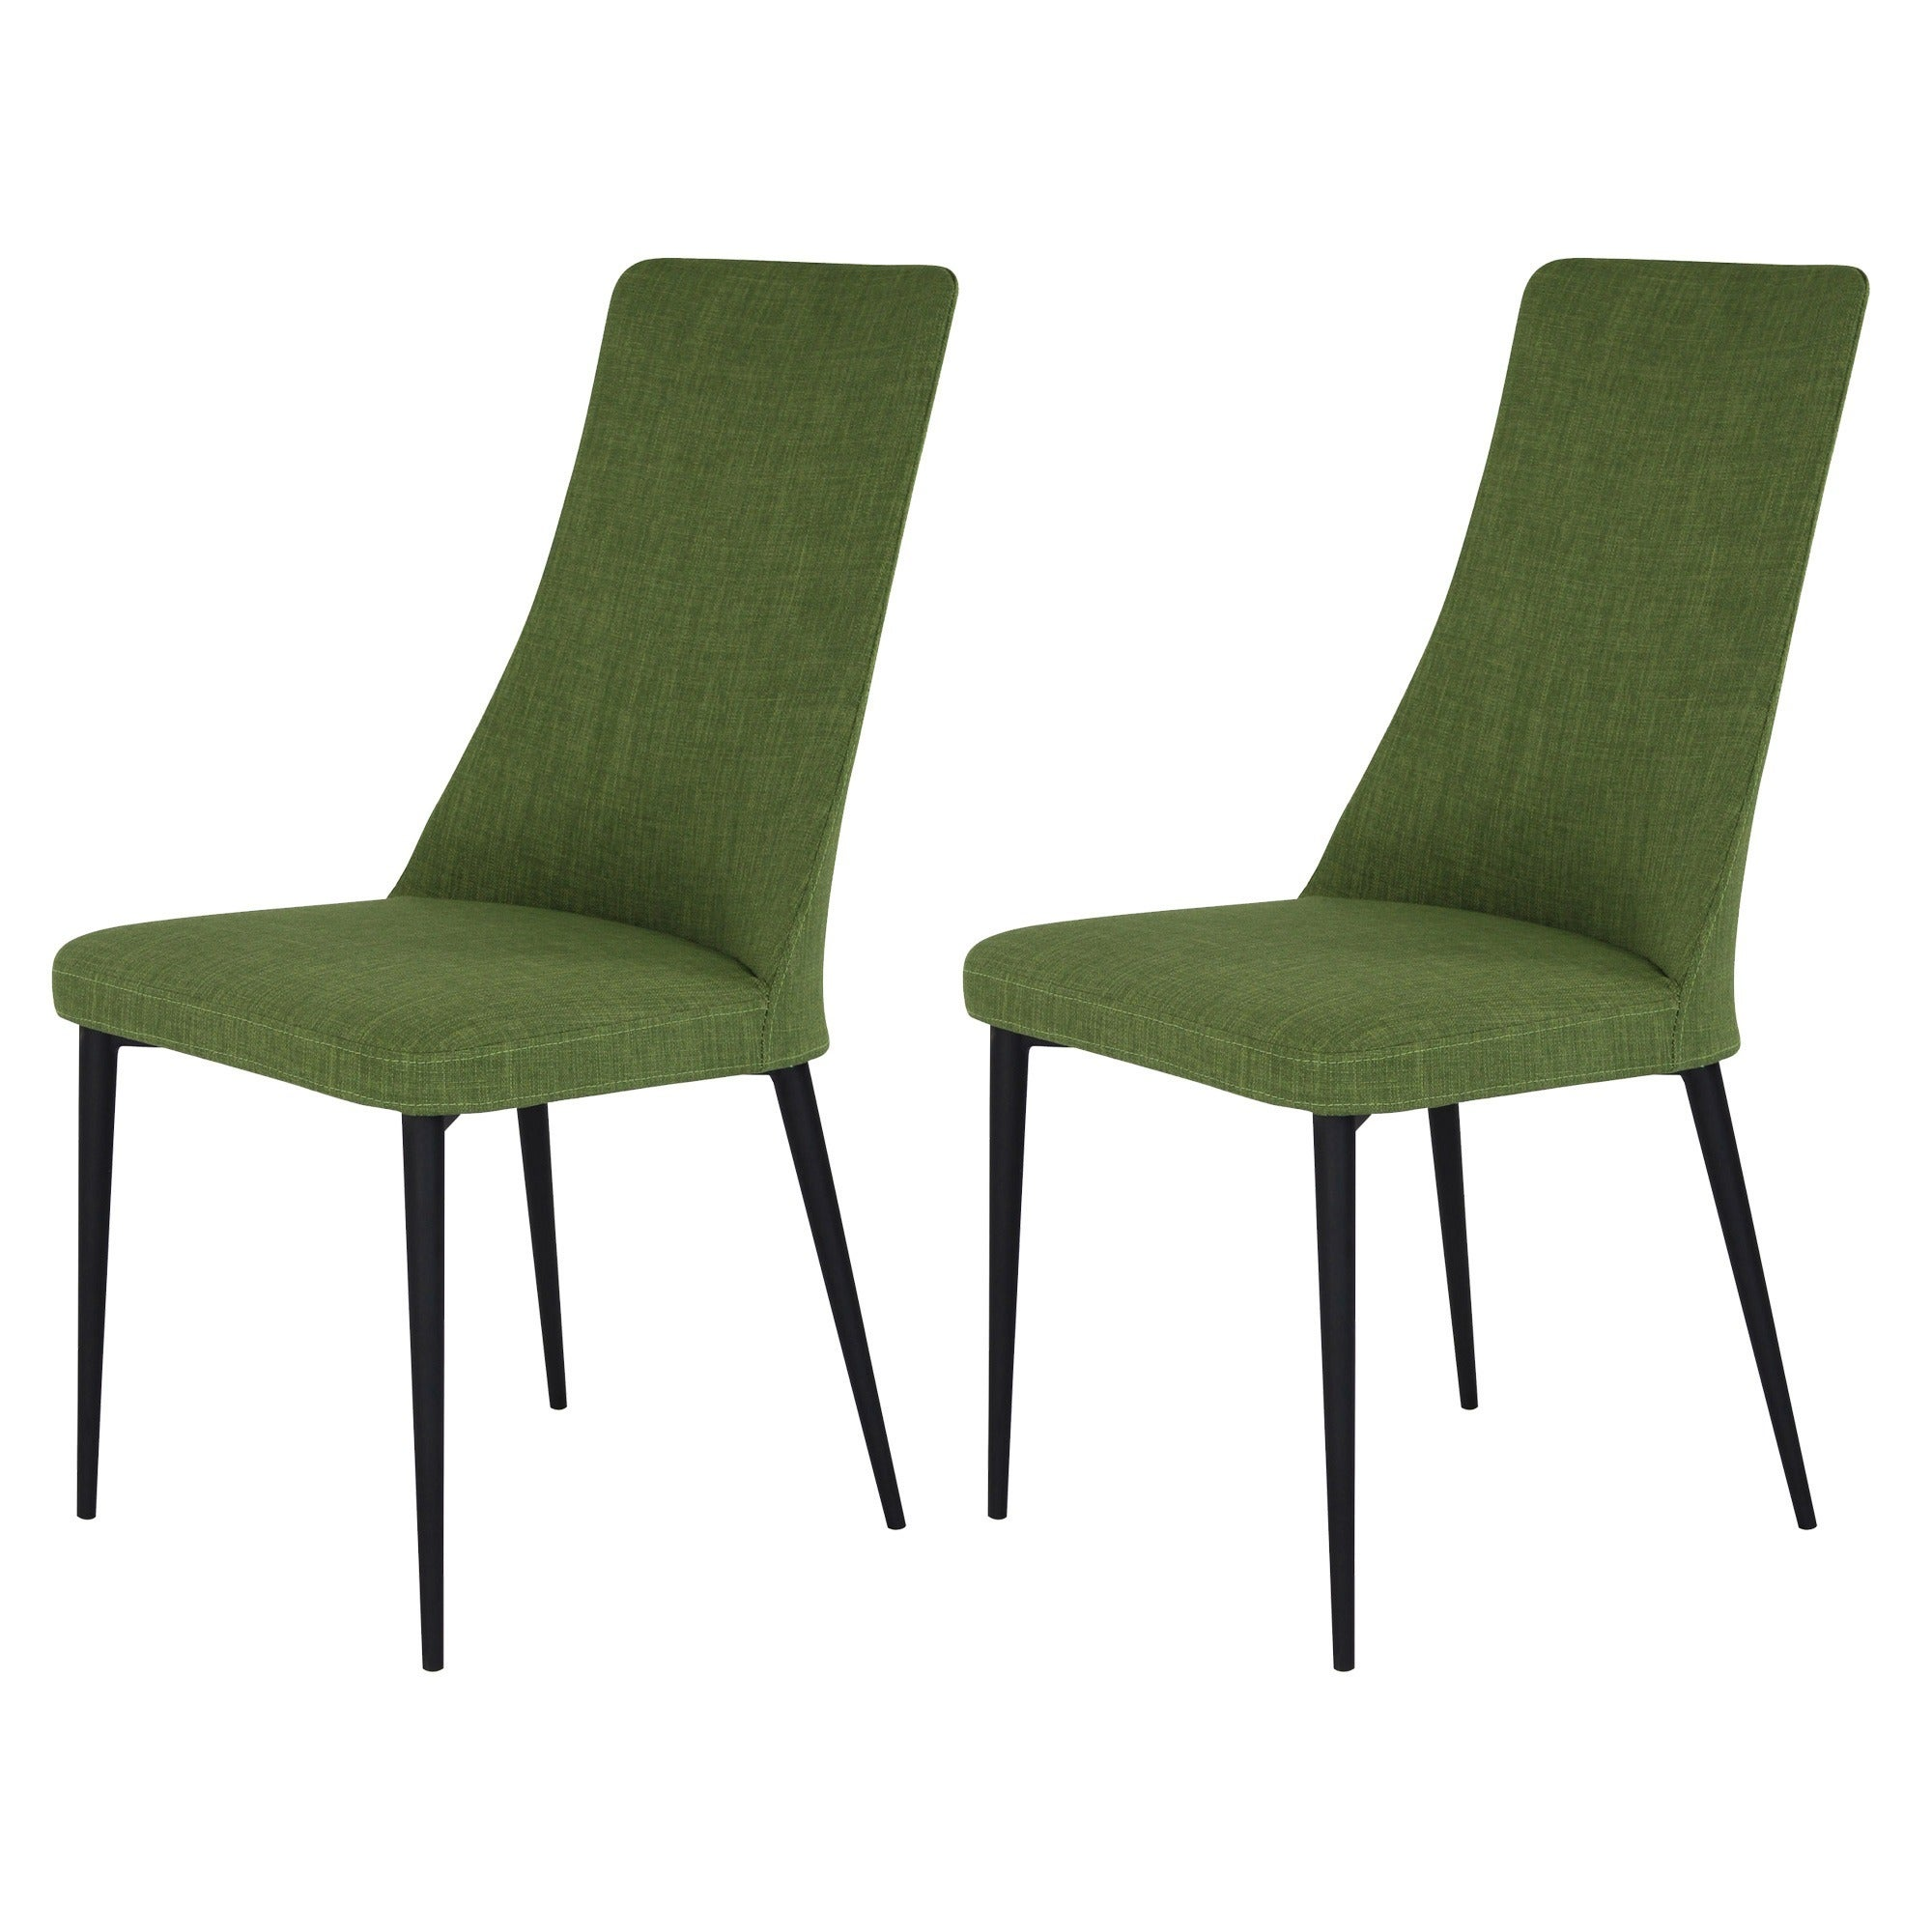 Shop Aurelle Home Manini Modern Green Dining Chair (Set Of 2)   On Sale    Free Shipping Today   Overstock   9525332